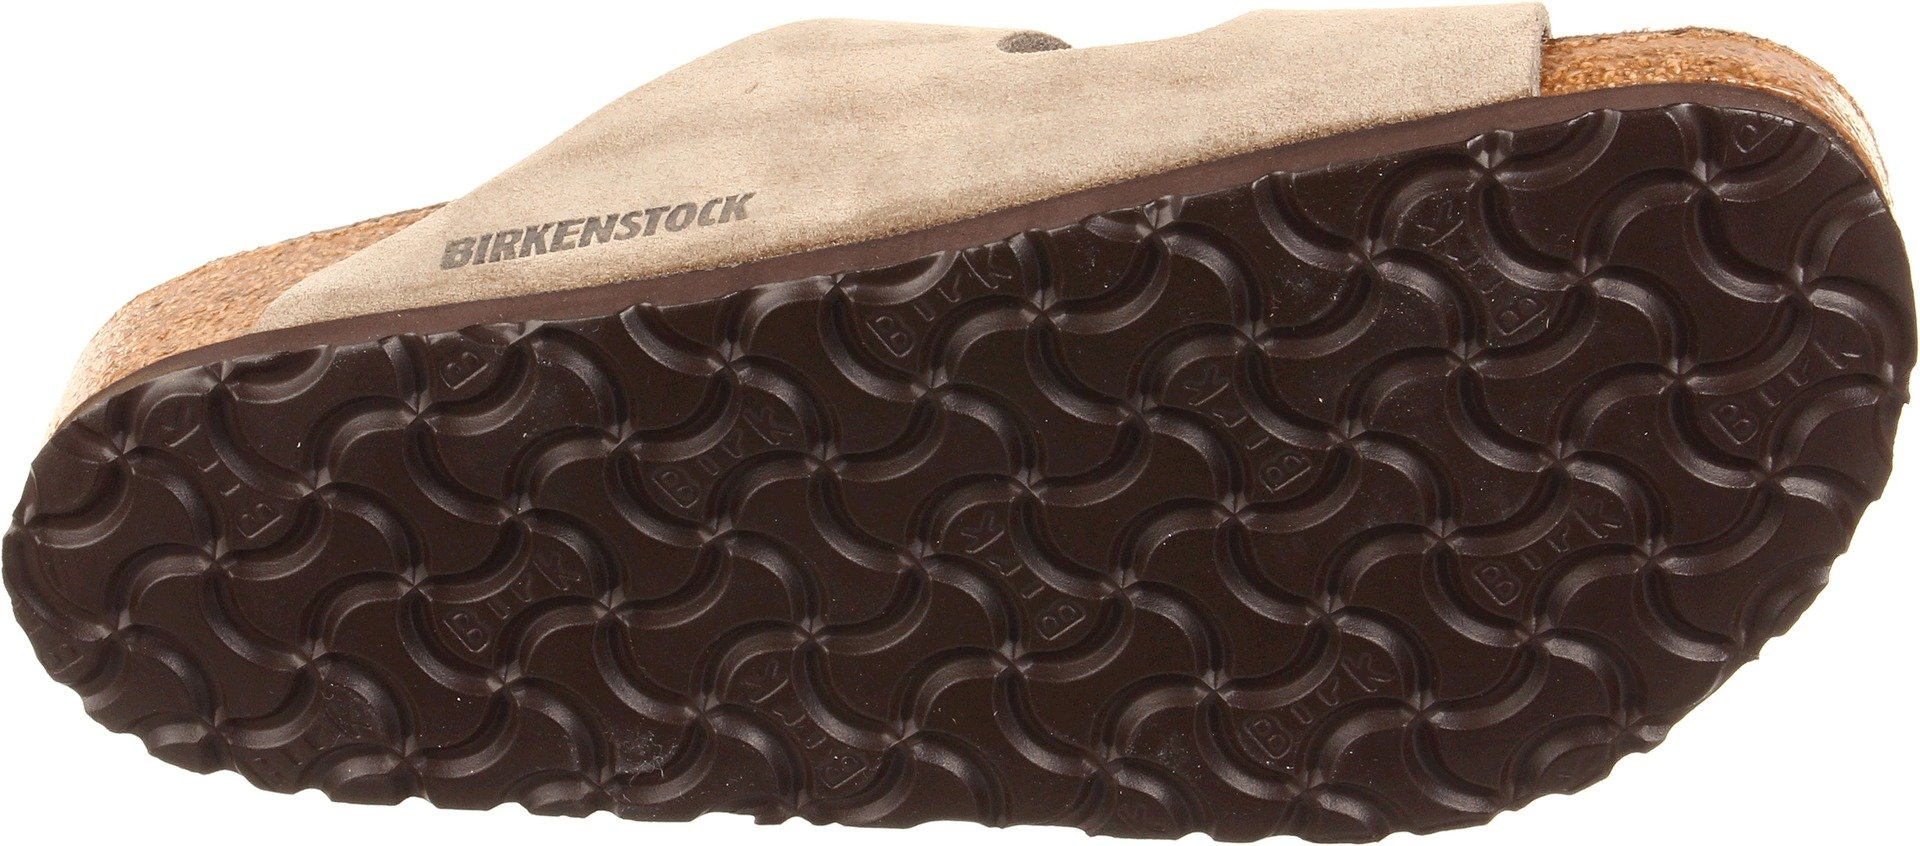 Birkenstock Unisex Arizona Taupe Suede Soft Foot Bed Sandals - 38 M EU / 7-7.5 B(M) US by Birkenstock (Image #3)